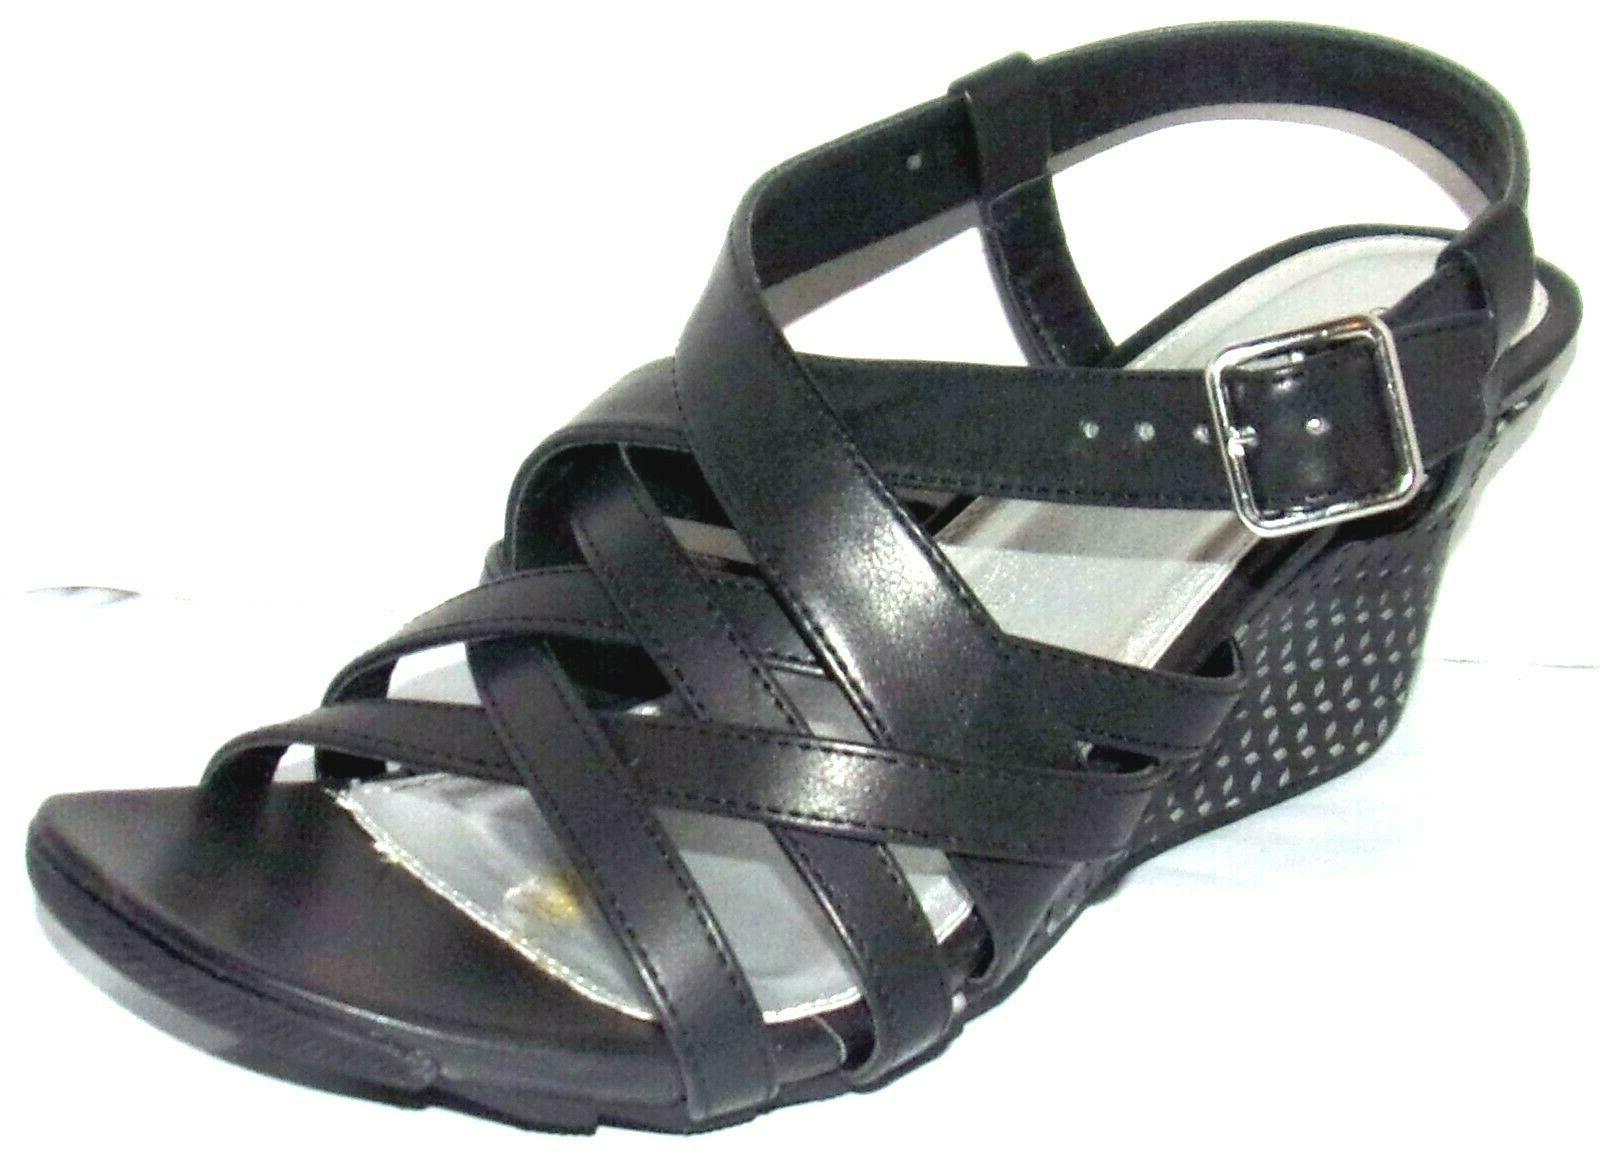 new cityscape black wedge sandals 10 w